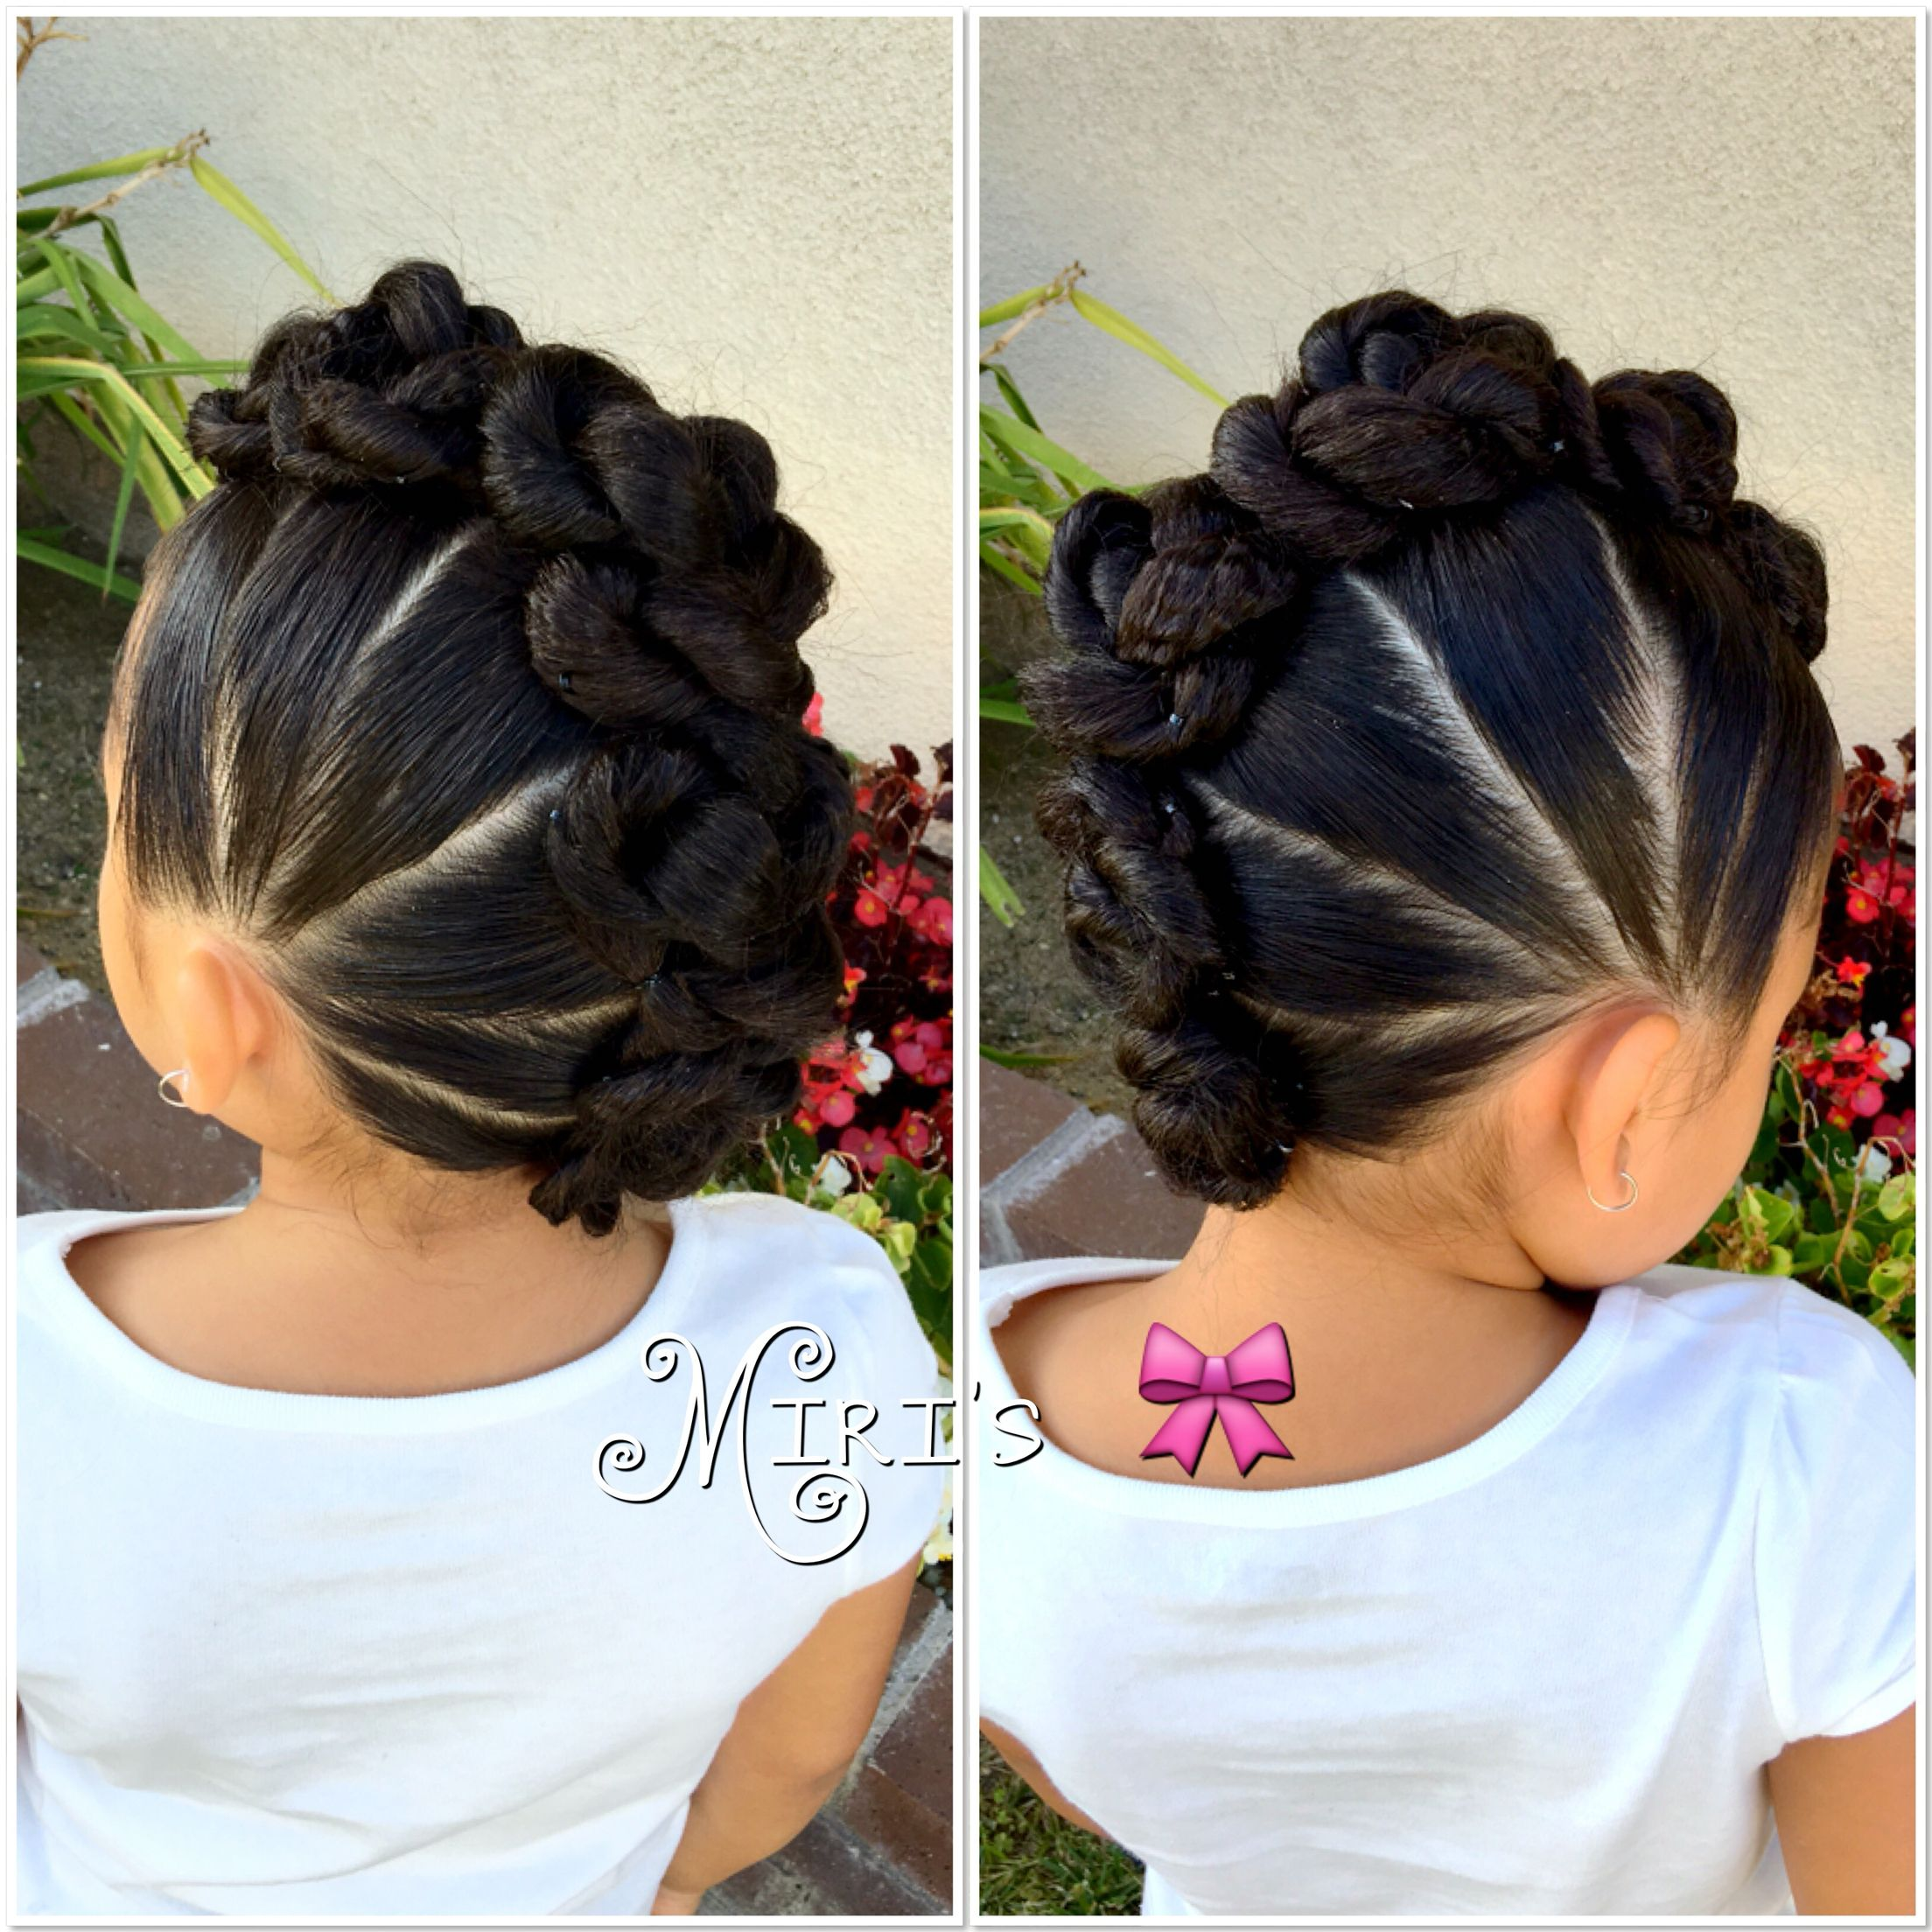 mohawk with twists hair style for little girls | kids braids